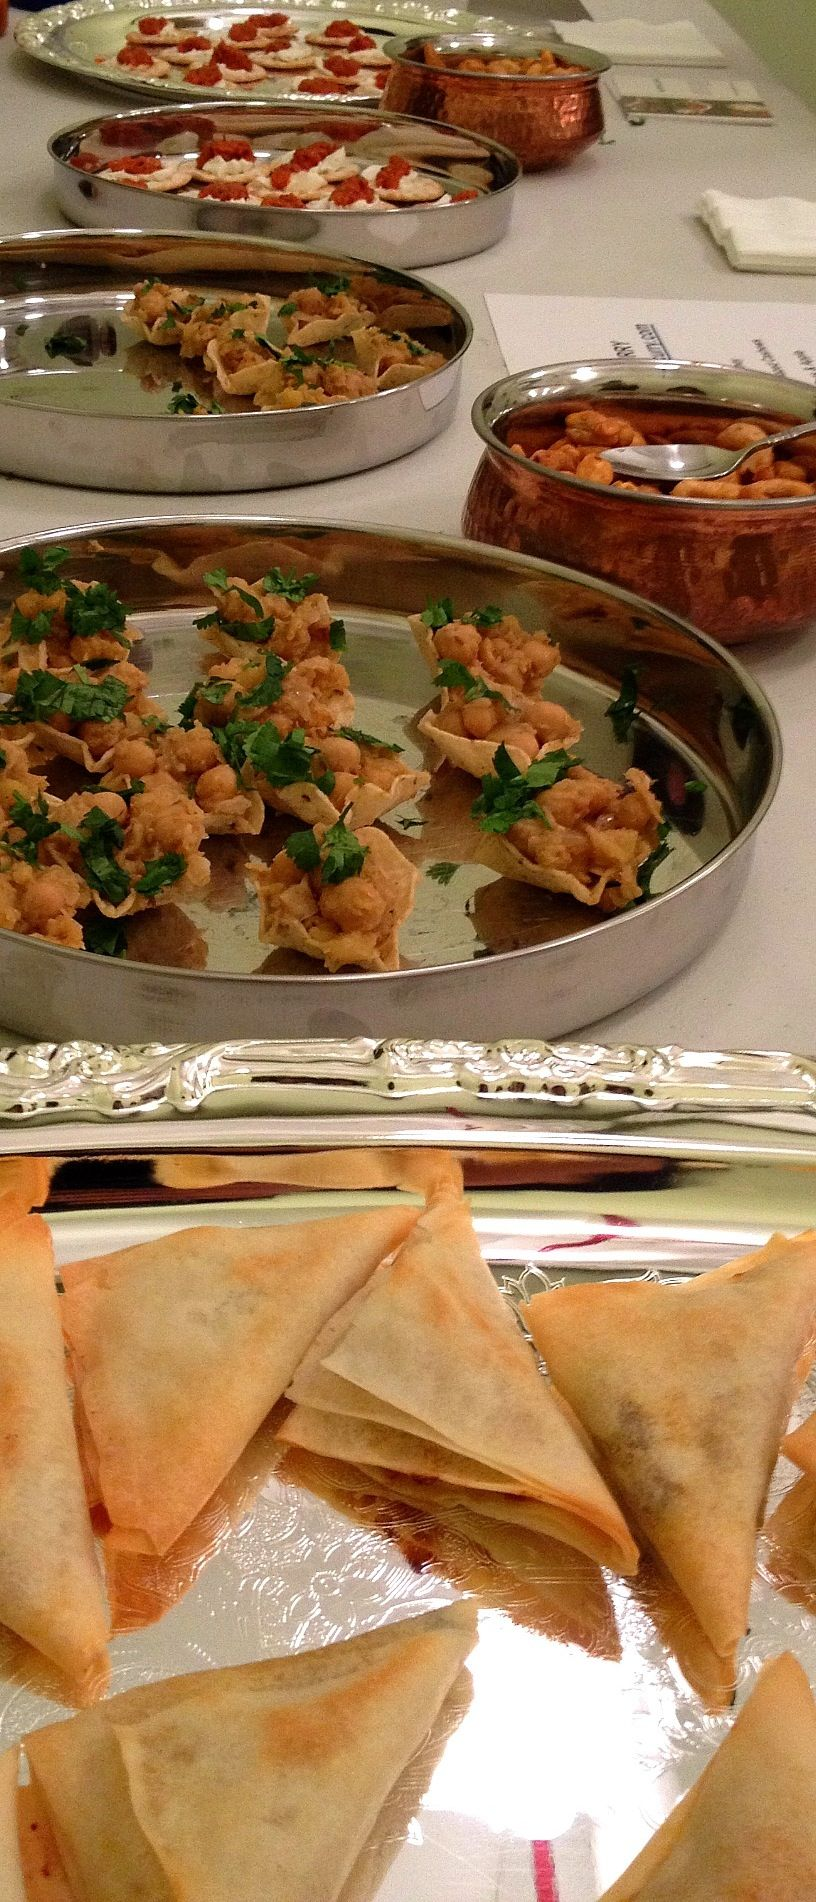 Recipes for indian finger food ideas perfect for a holiday party recipes for indian finger food ideas perfect for a holiday party bigapplecurry forumfinder Images